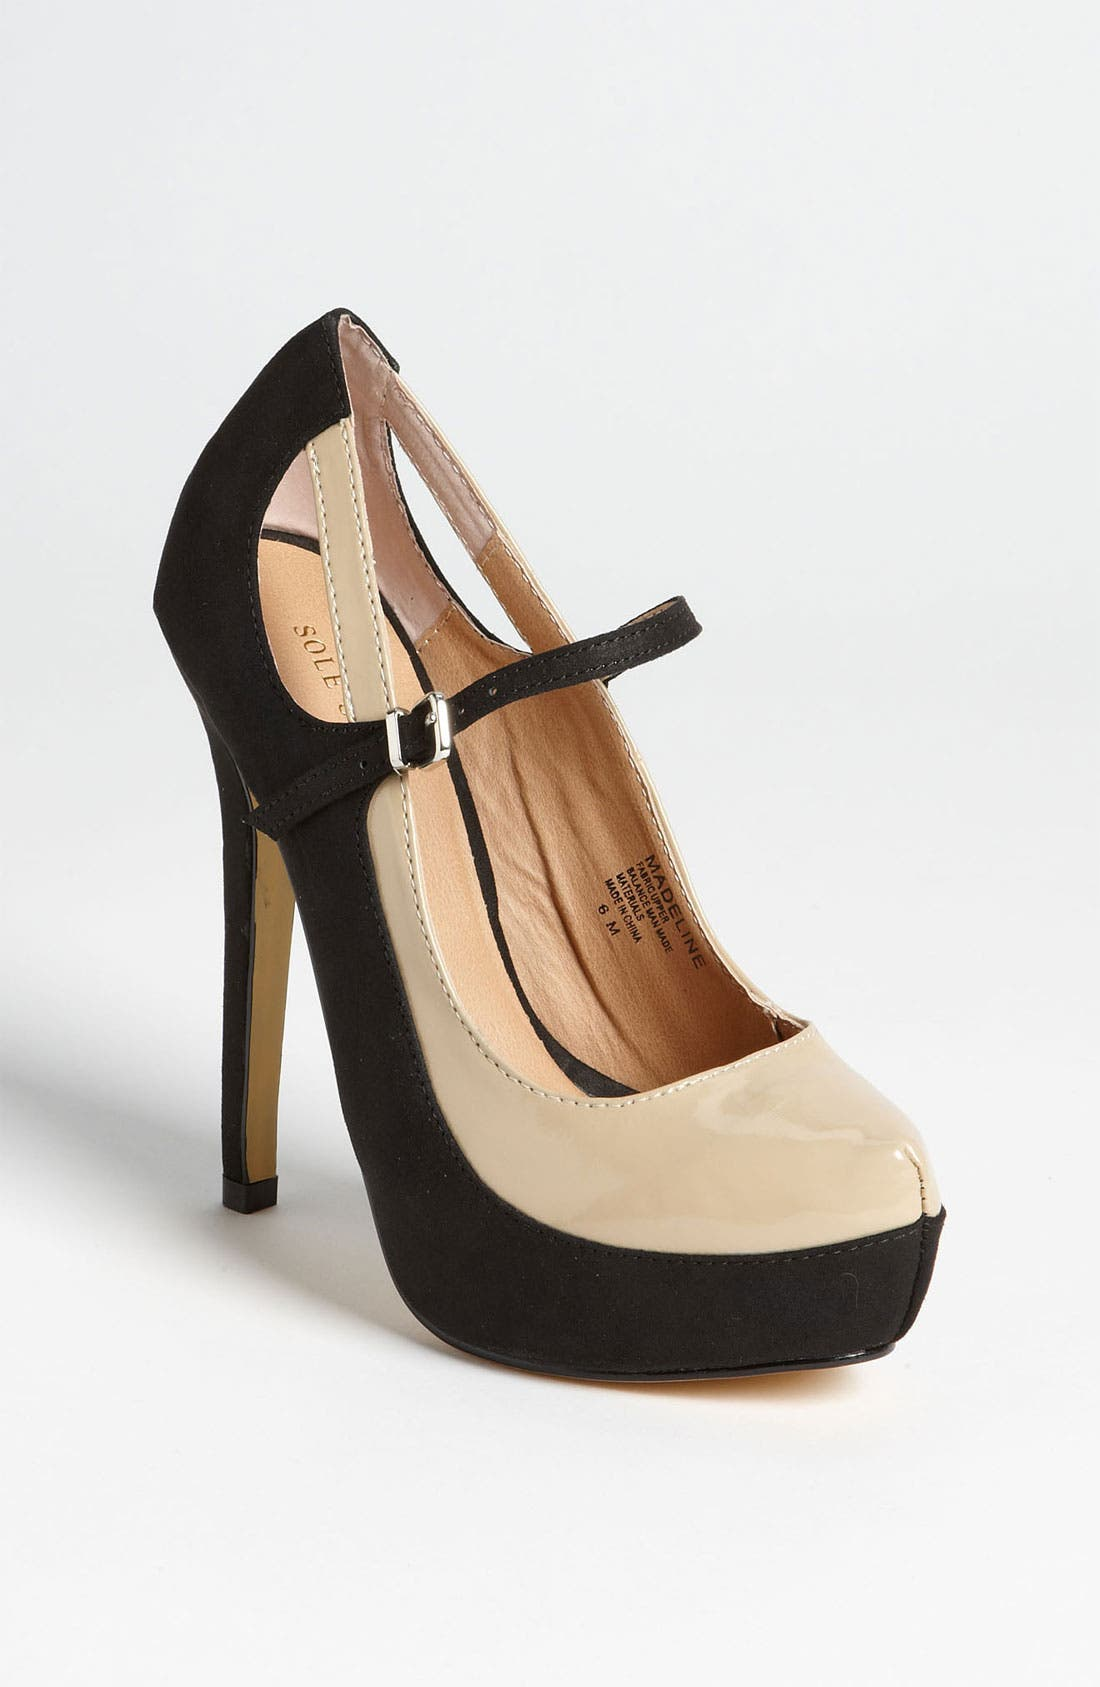 Alternate Image 1 Selected - Sole Society 'Madeline' Pump